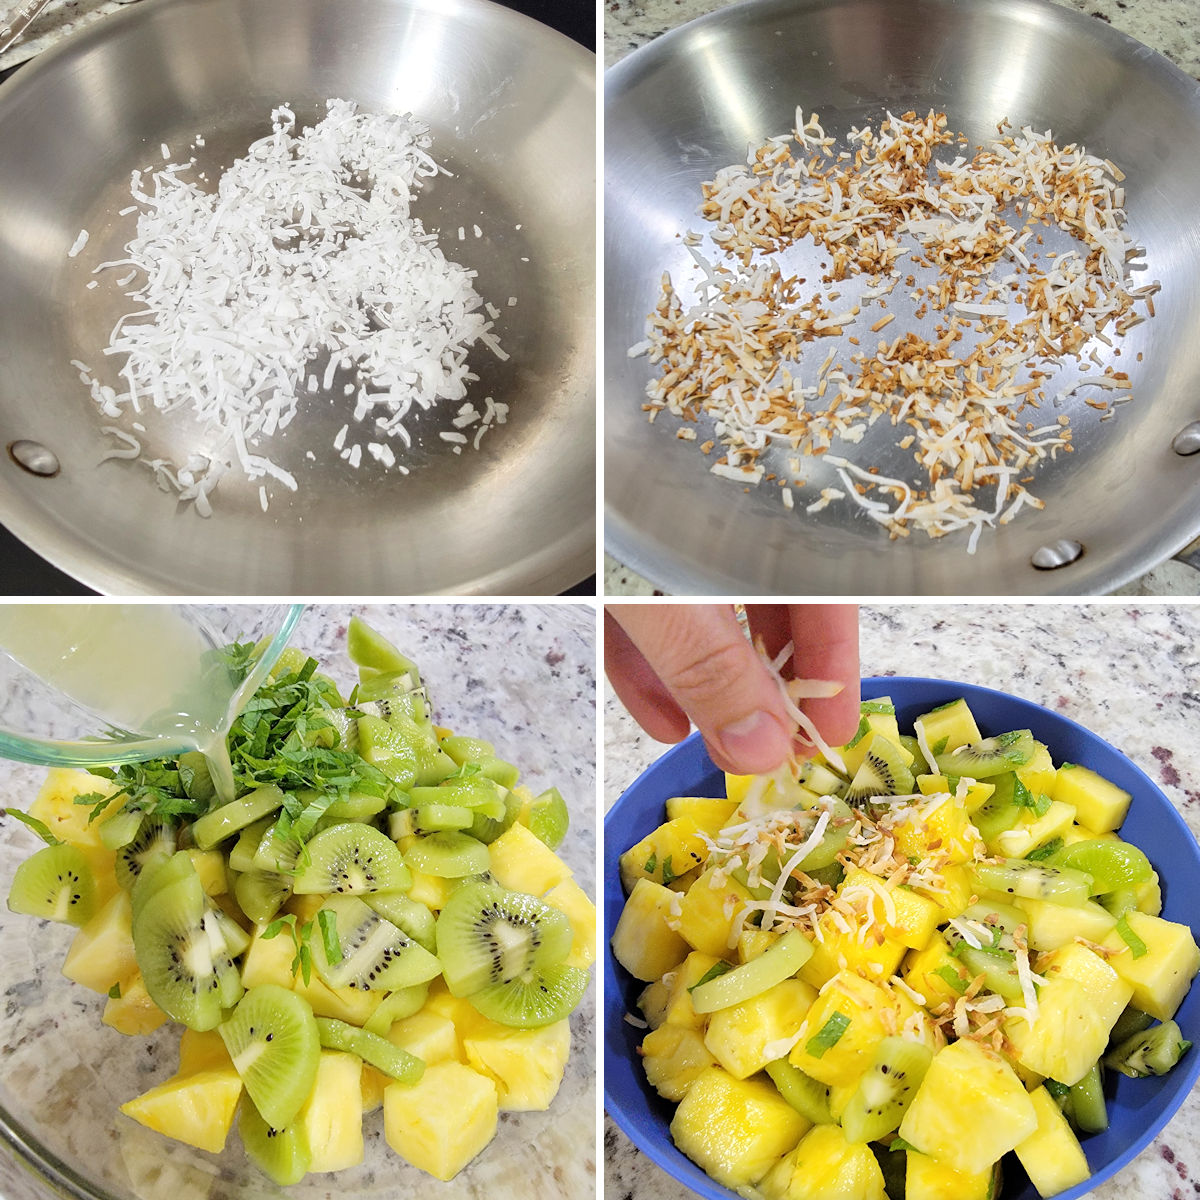 Toasting coconut and assembling a fruit salad in a bowl.